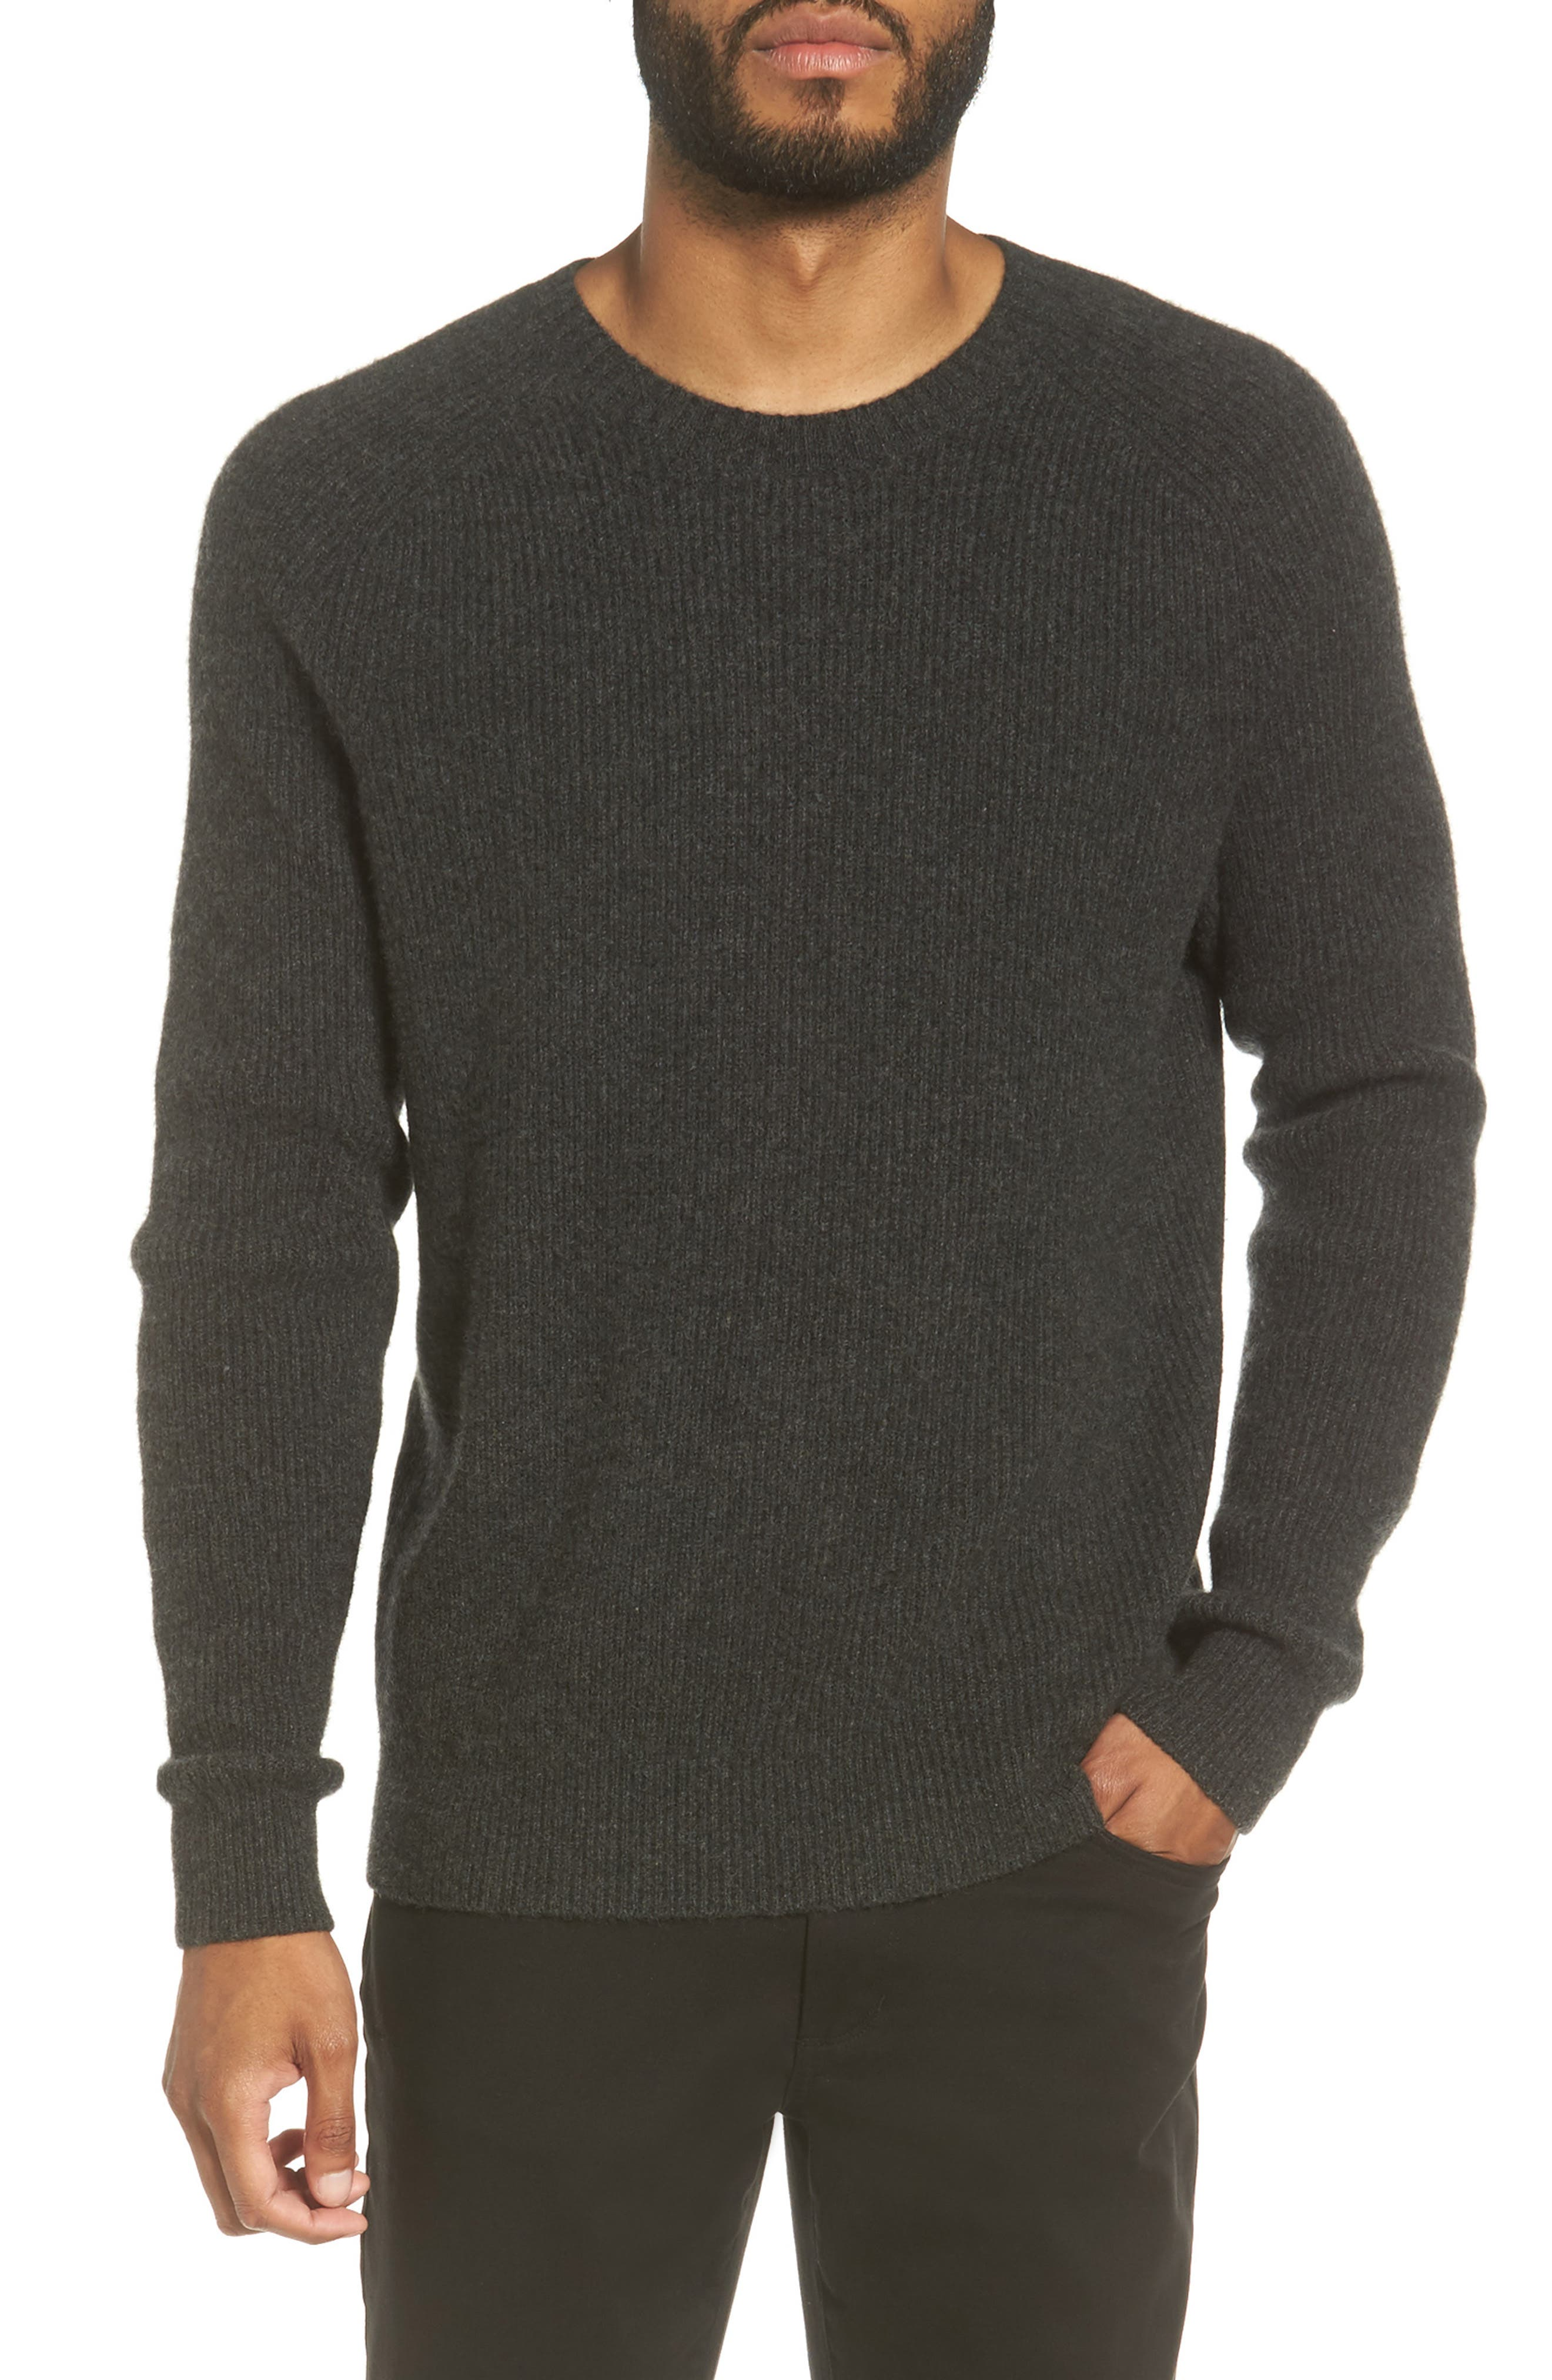 Ribbed Wool & Cashmere Raglan Sweater,                             Main thumbnail 1, color,                             064